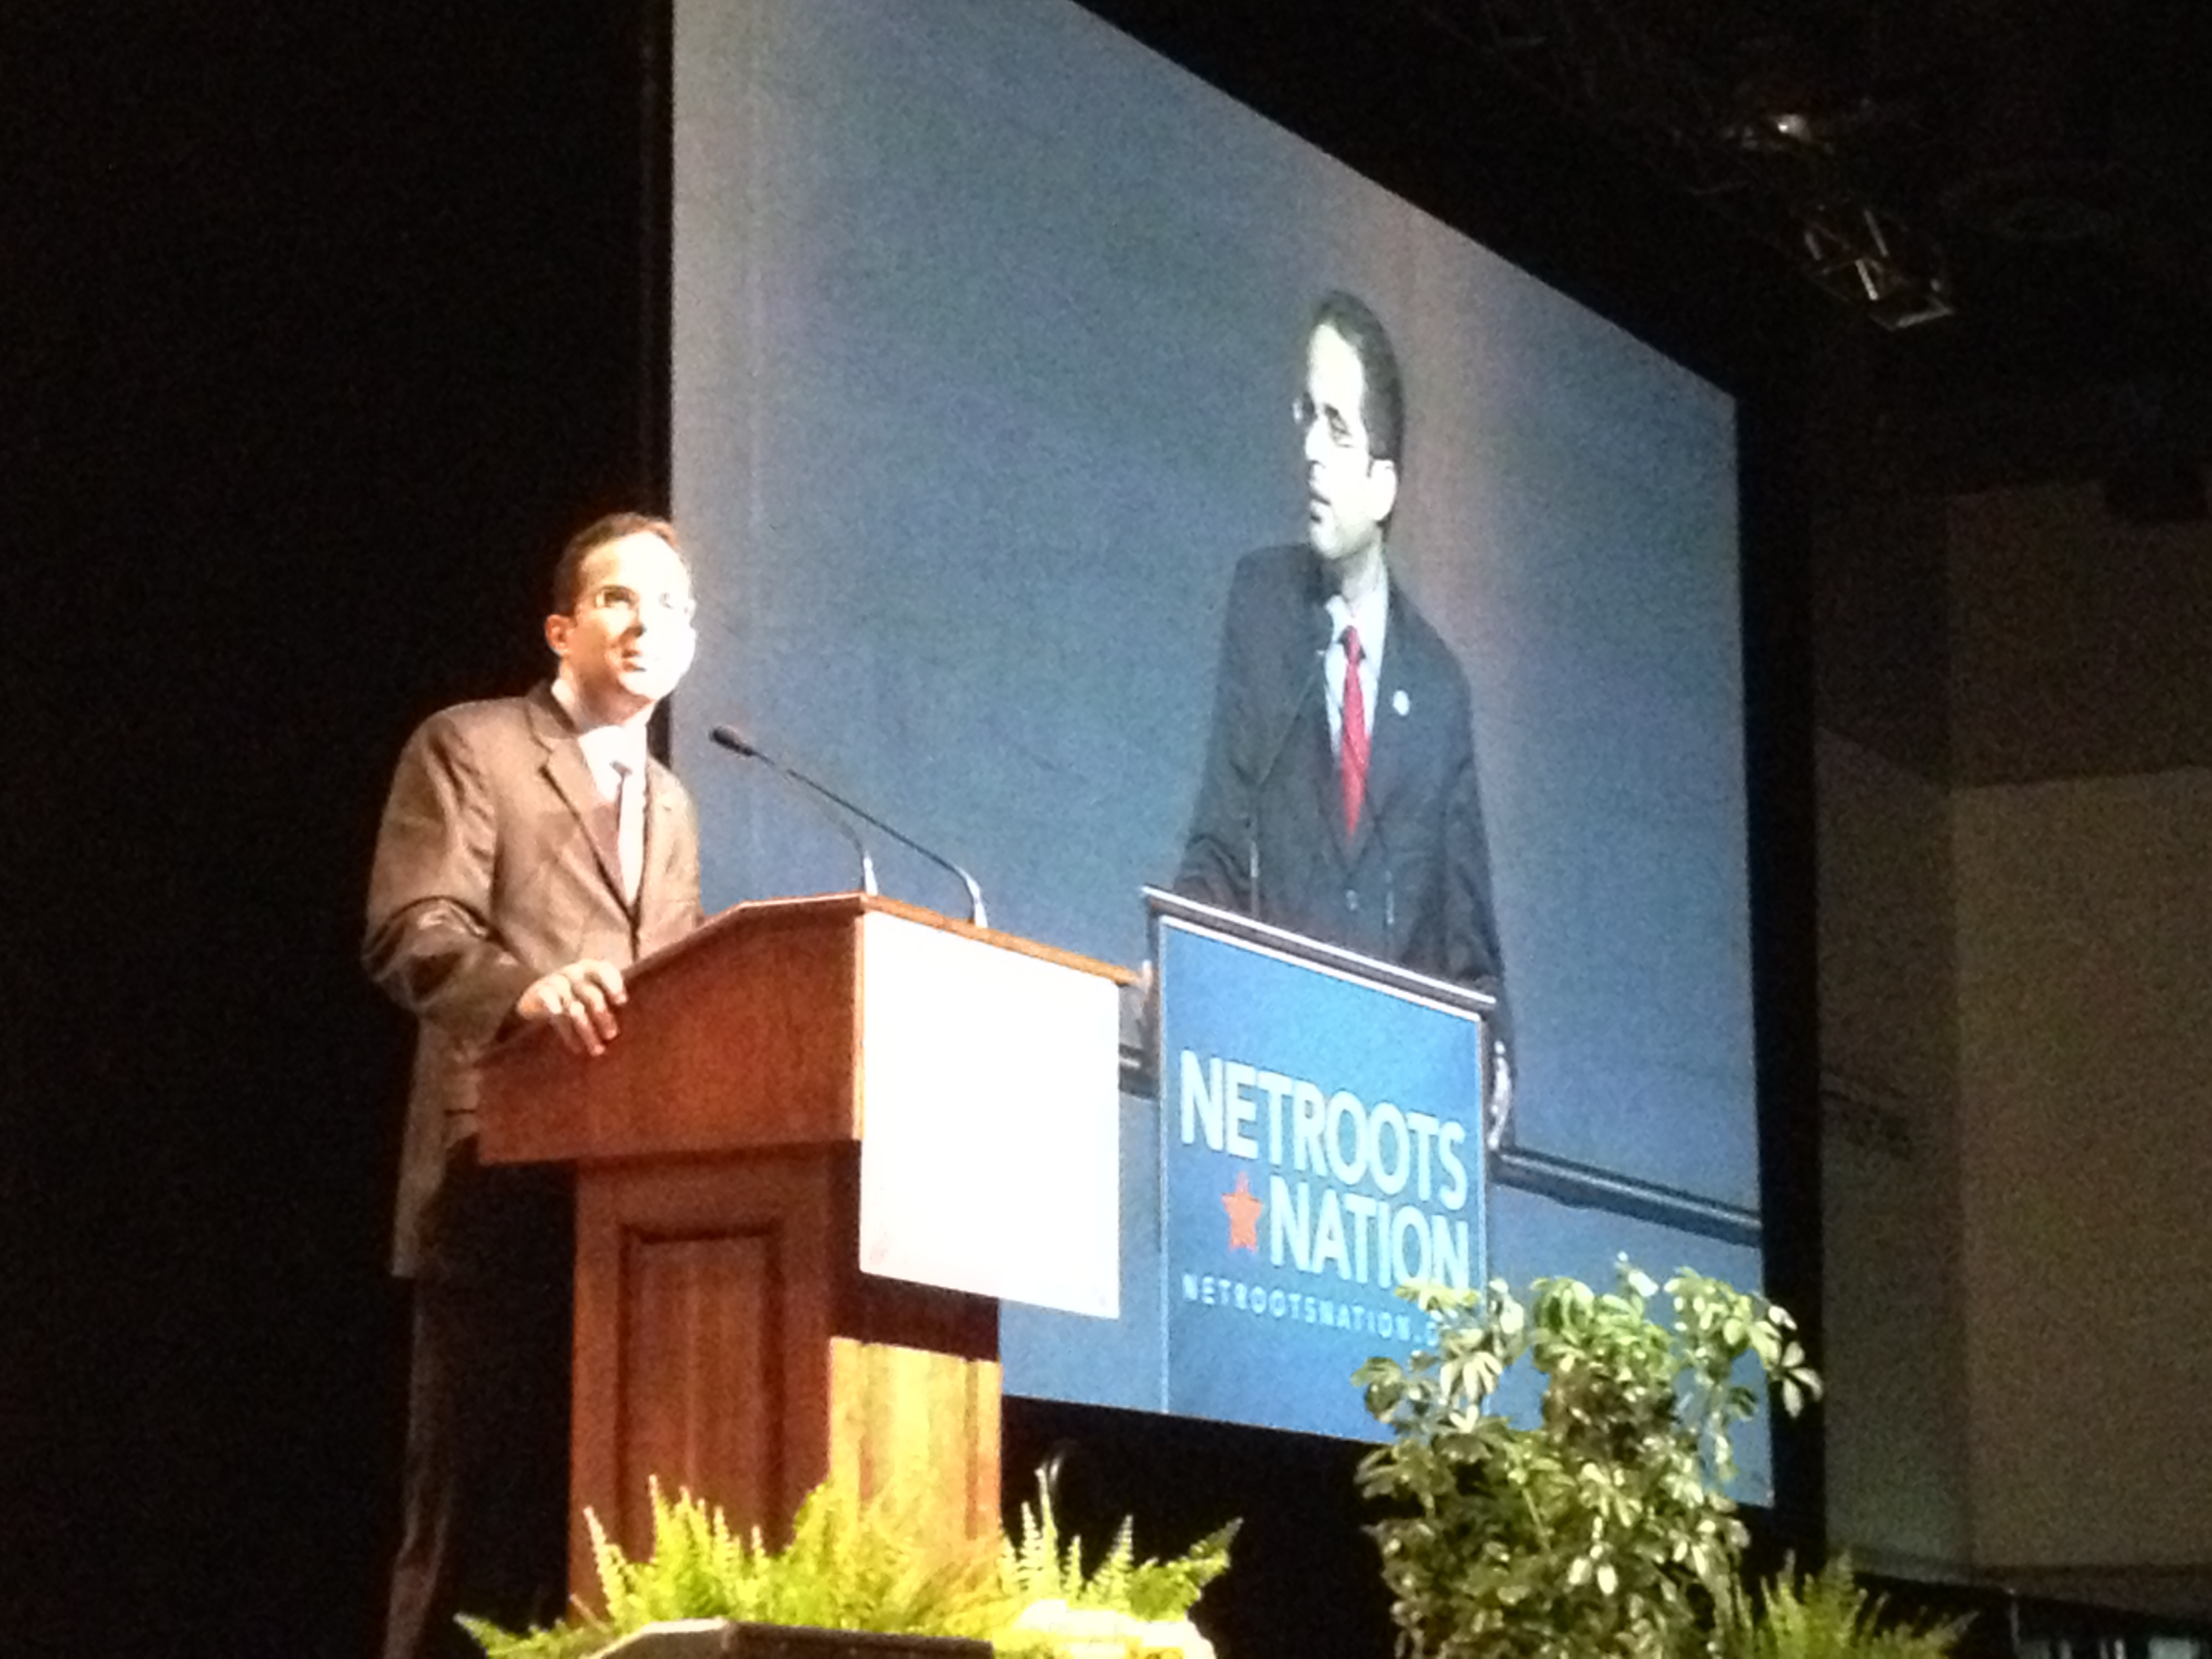 Providence Mayor Angel Taveras at Netroots Nation. (Photo by Bob Plain)